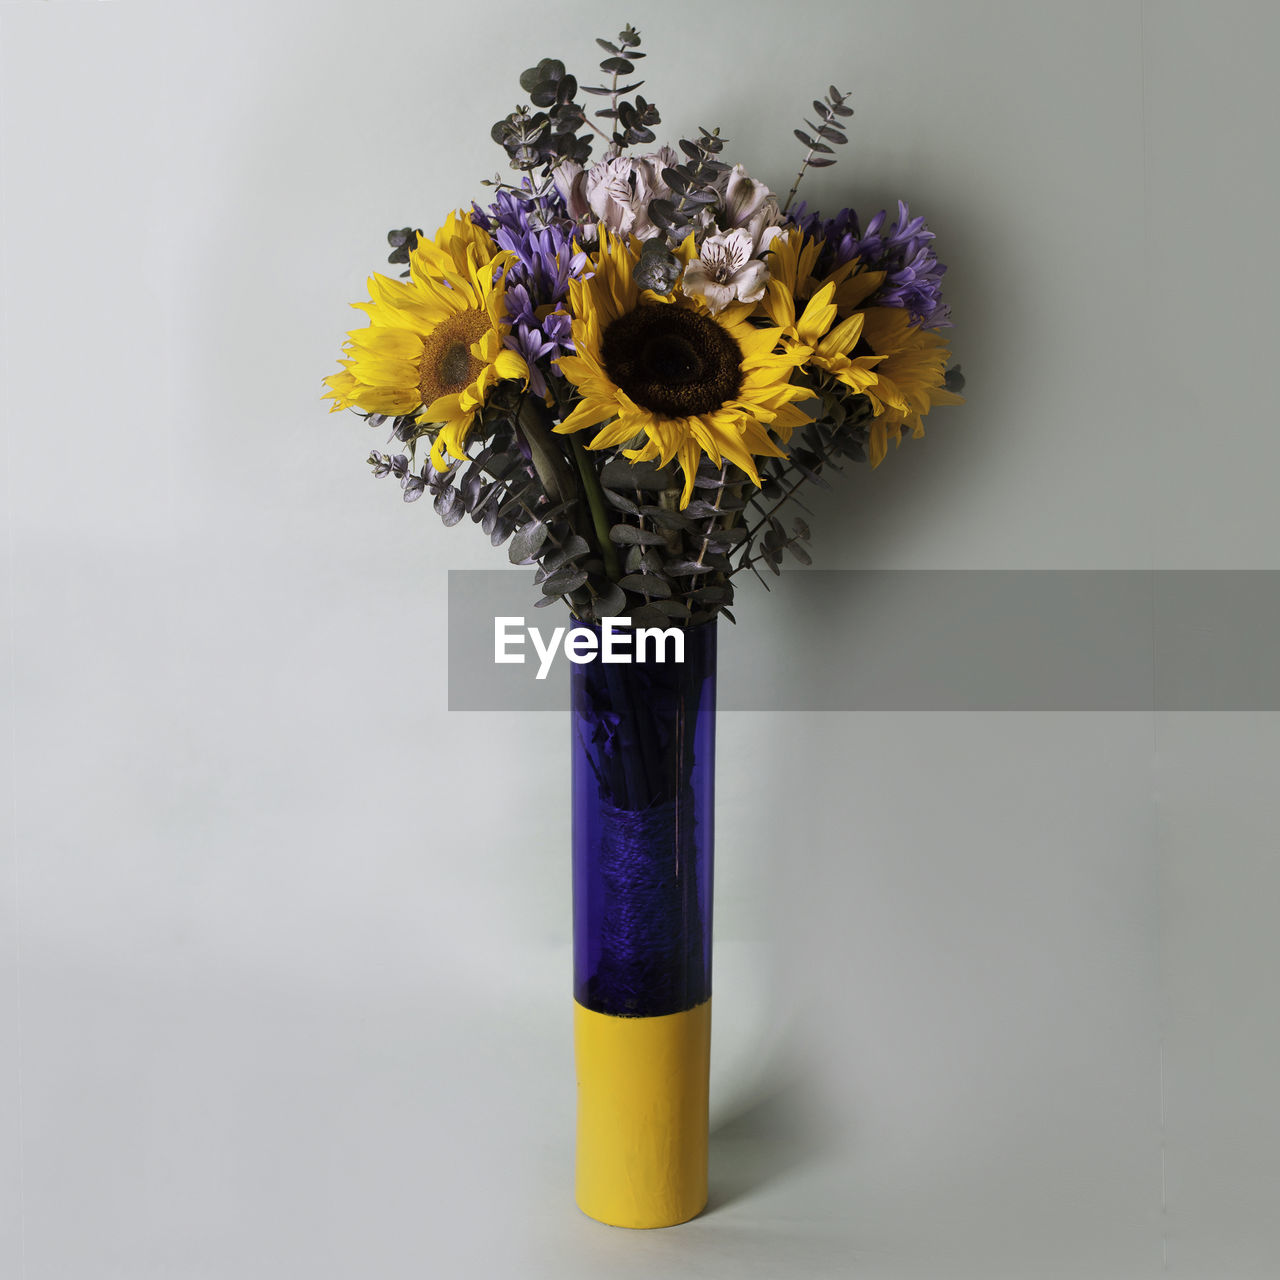 flower, flowering plant, yellow, flower head, plant, vulnerability, freshness, studio shot, fragility, close-up, purple, indoors, inflorescence, vase, no people, petal, beauty in nature, nature, still life, white background, flower arrangement, bunch of flowers